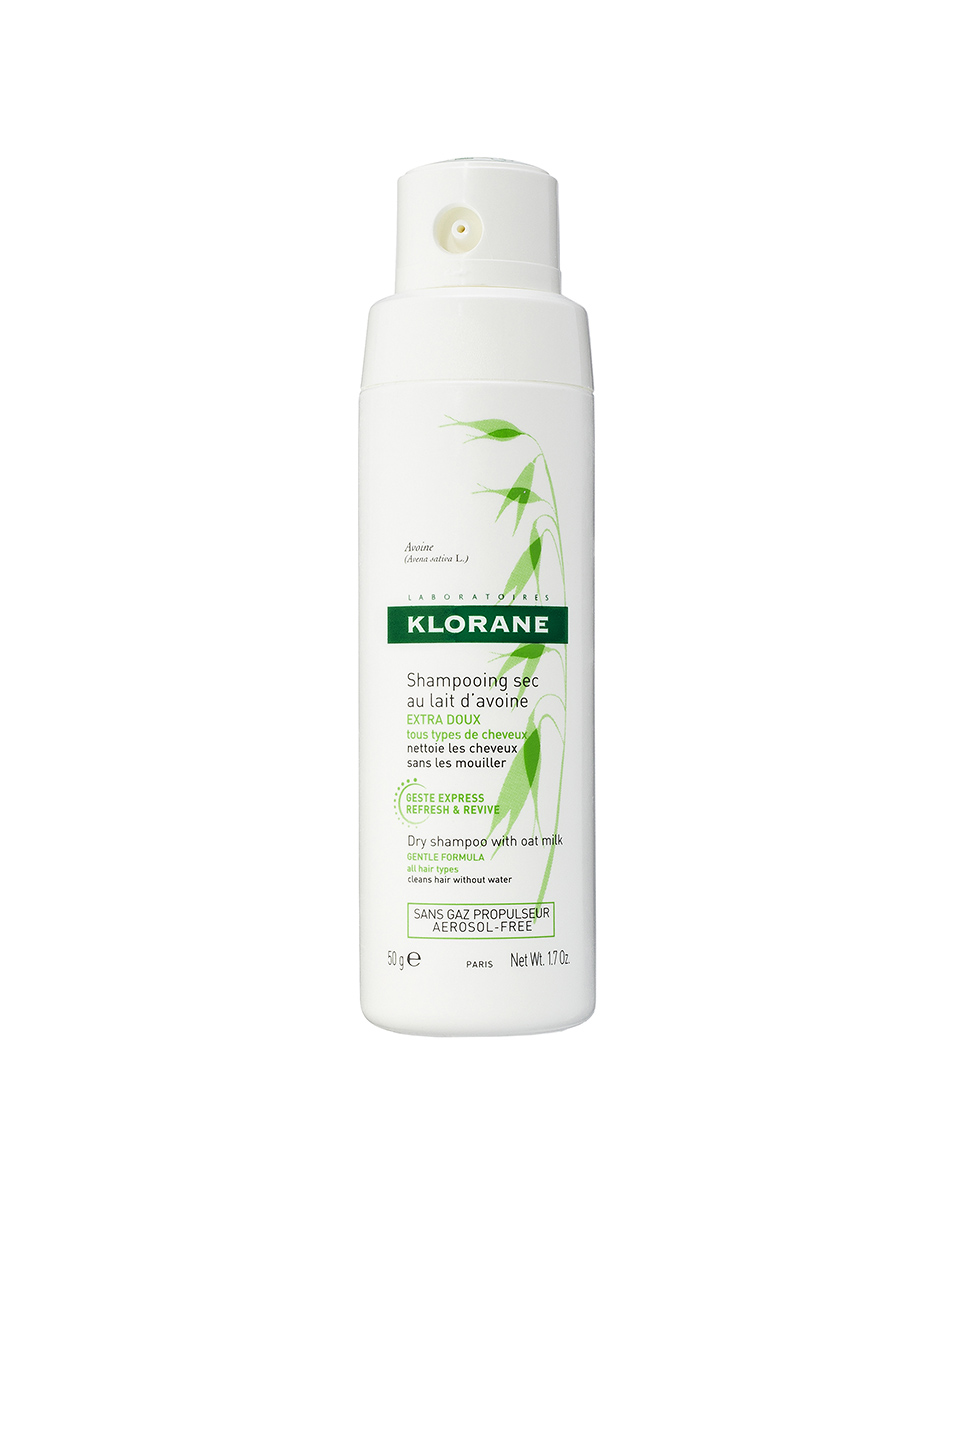 Klorane Non-Aerosol Dry Shampoo with Oat Milk in